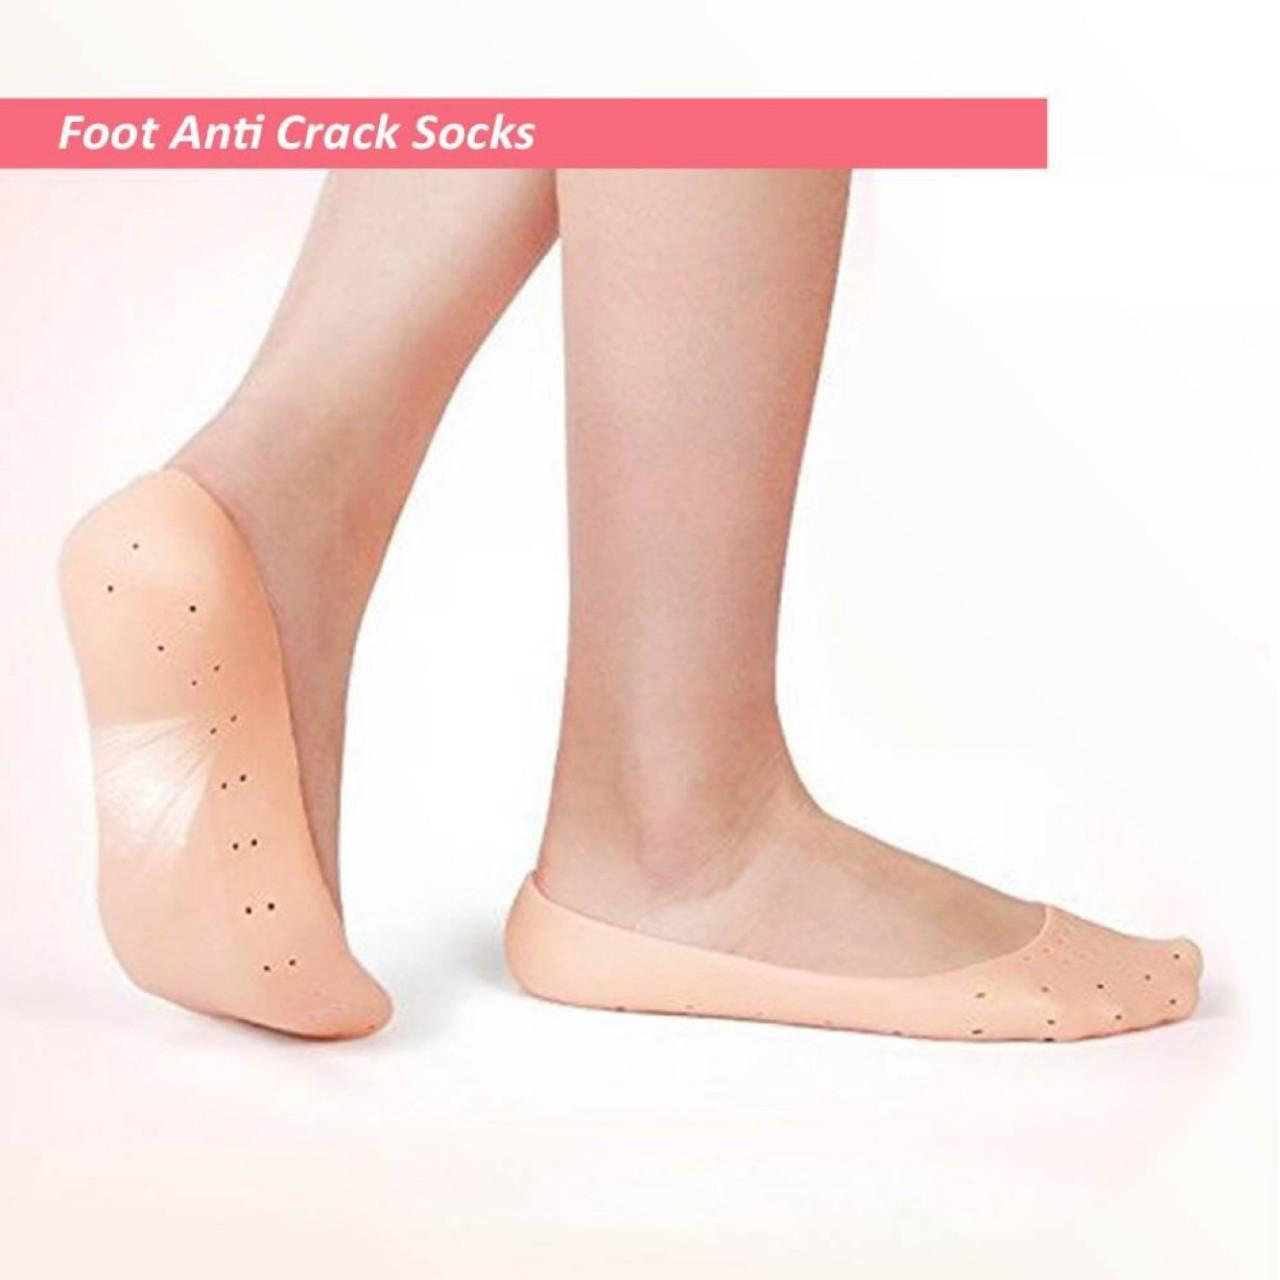 Anti Crack Full Length Silicone Foot Protector Moisturizing Socks For Foot-Care And Heel Cracks For Summer